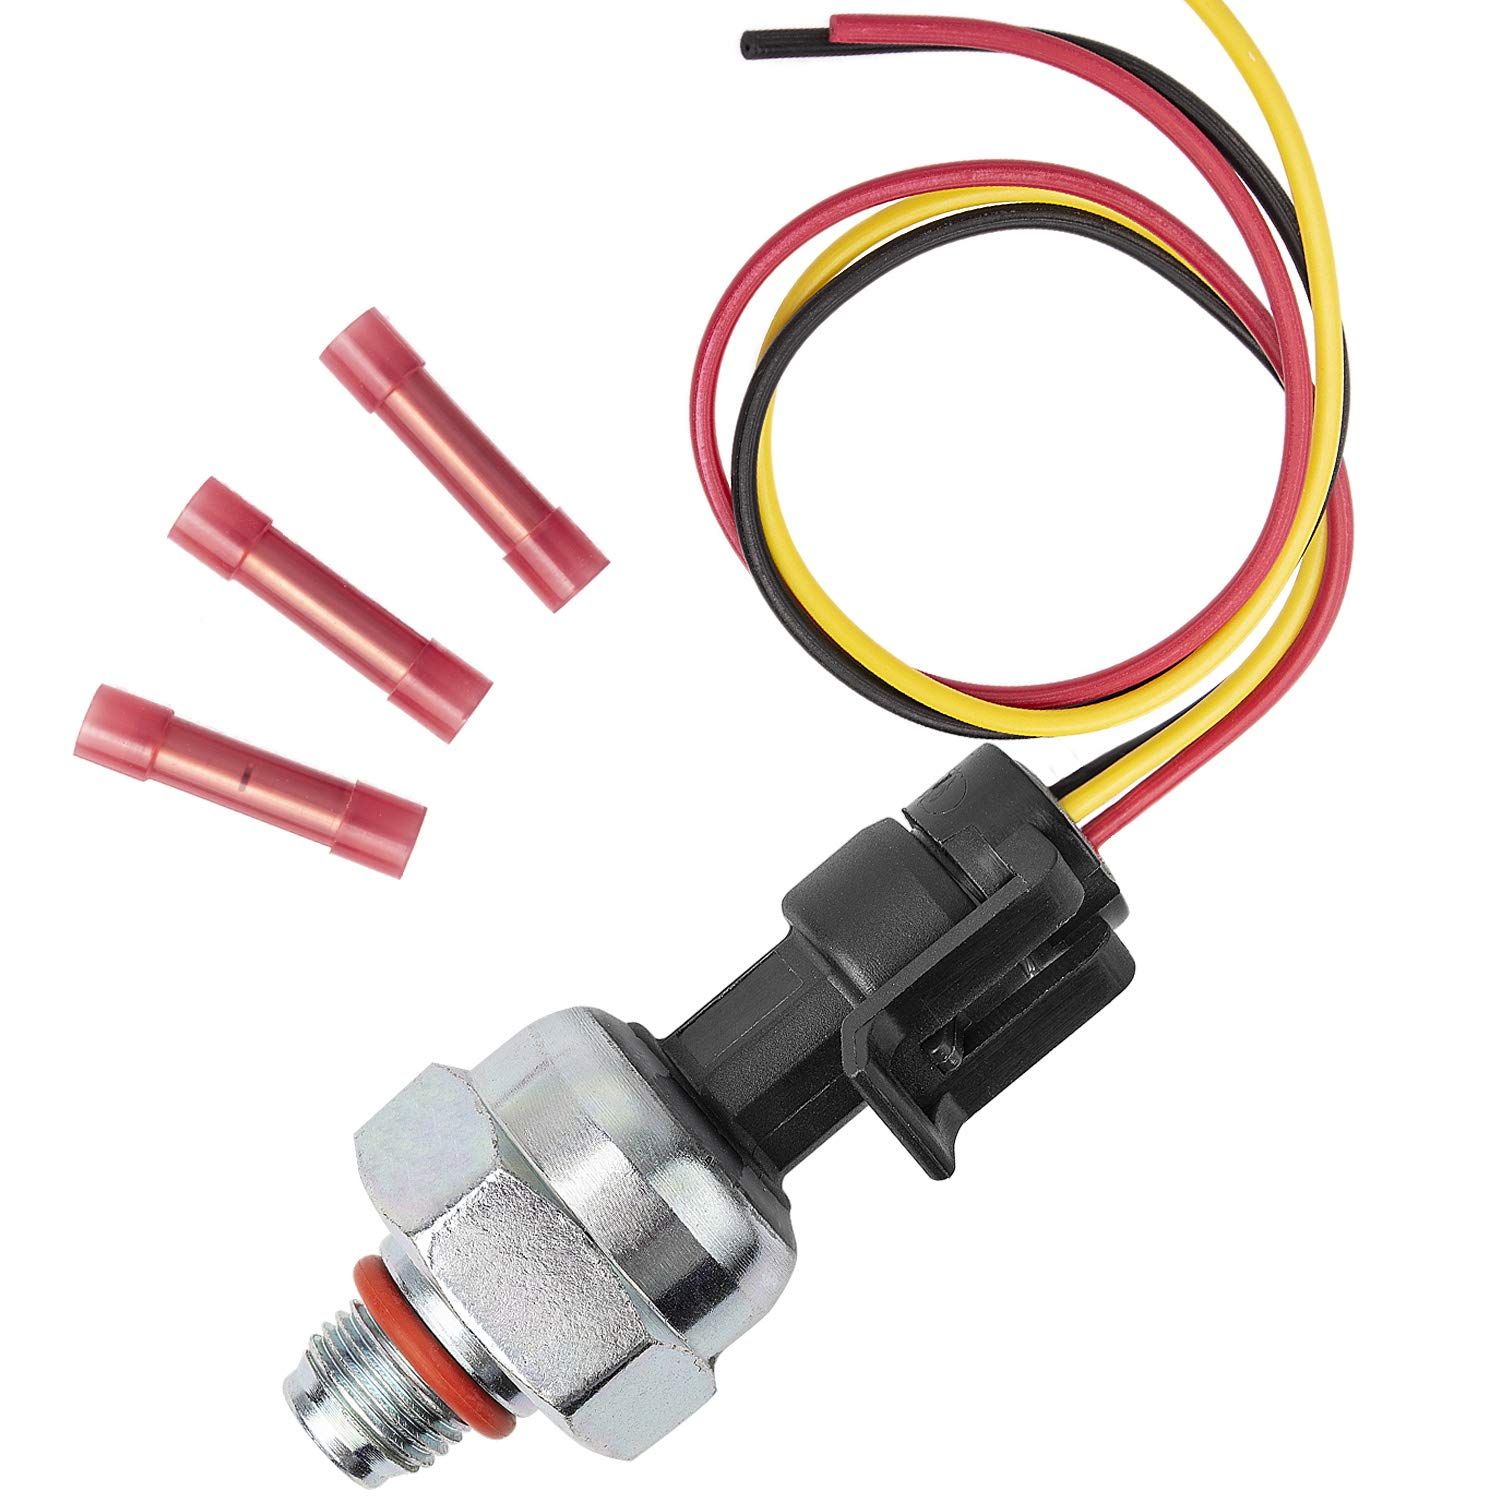 YAOPEI 7.3 ICP Sensor for 1995-2003 Ford 7.3L Powerstroke with Pigtail Harness Kit Injector Control Pressure Sensor 1807329C92 ICP102 HONORY USA